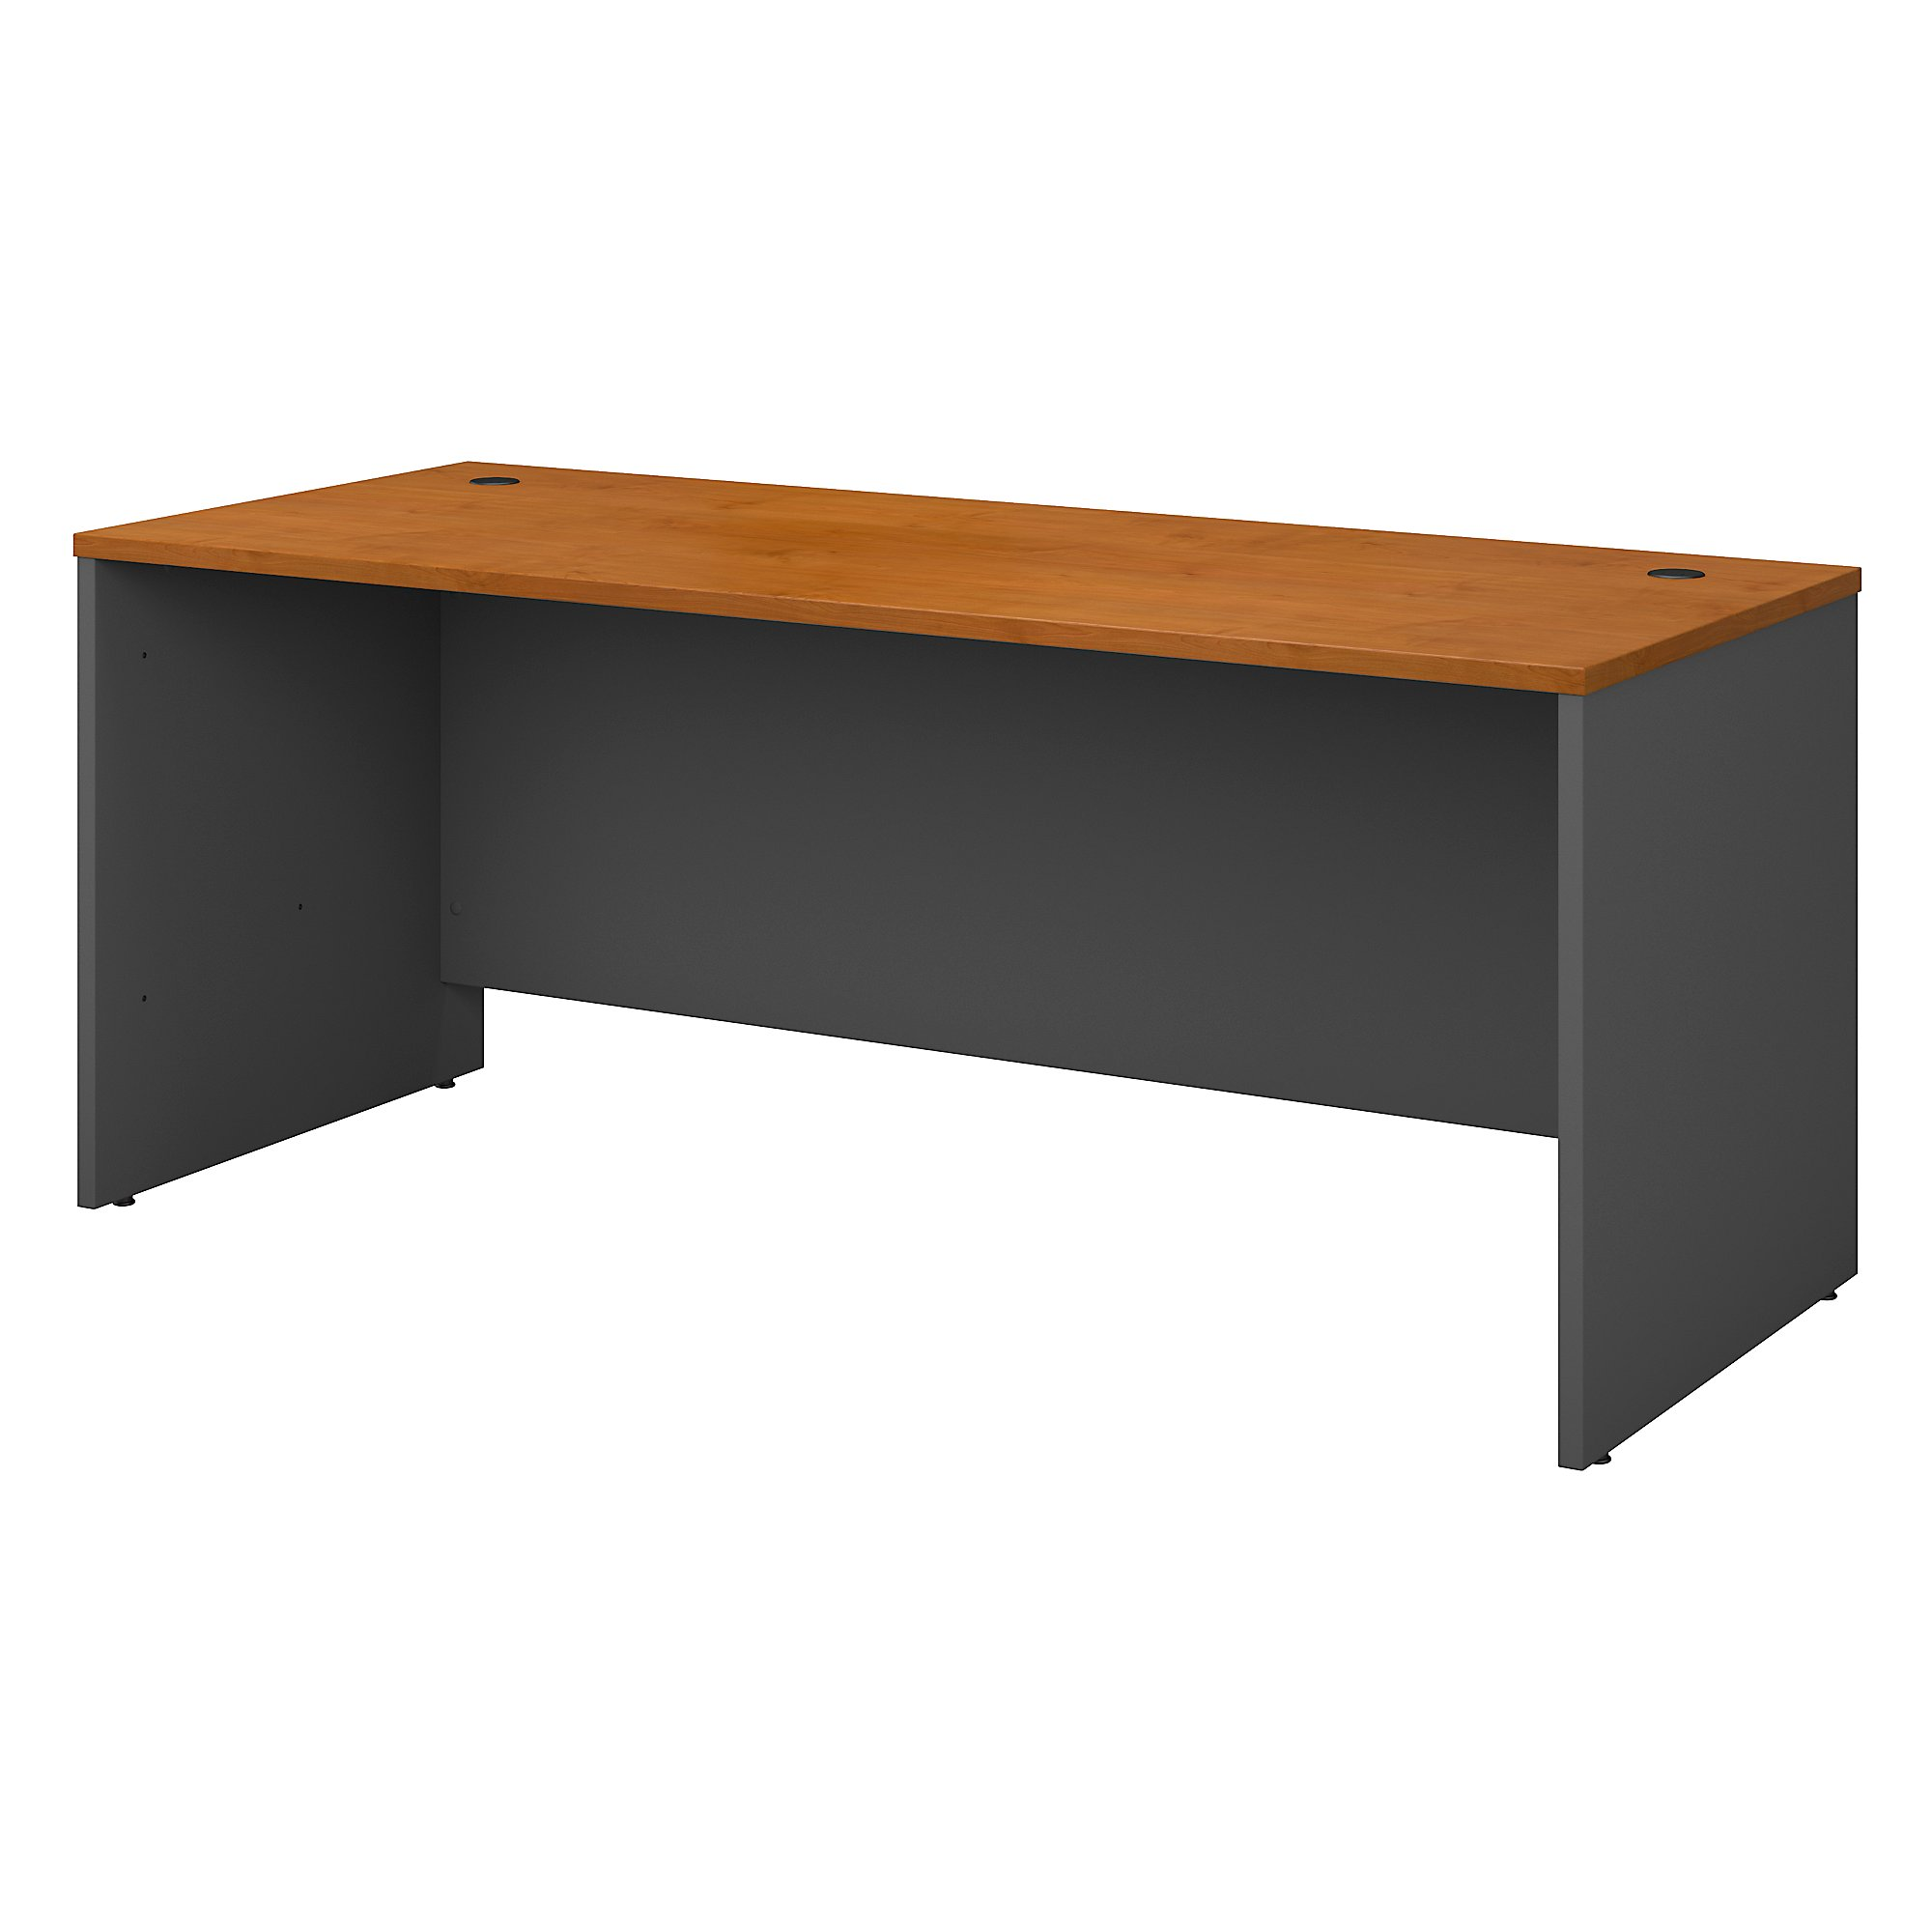 Office furniture series c classic shell desk design 200 lbs weight capacity engineered wood natural cherry desk shell walmart com